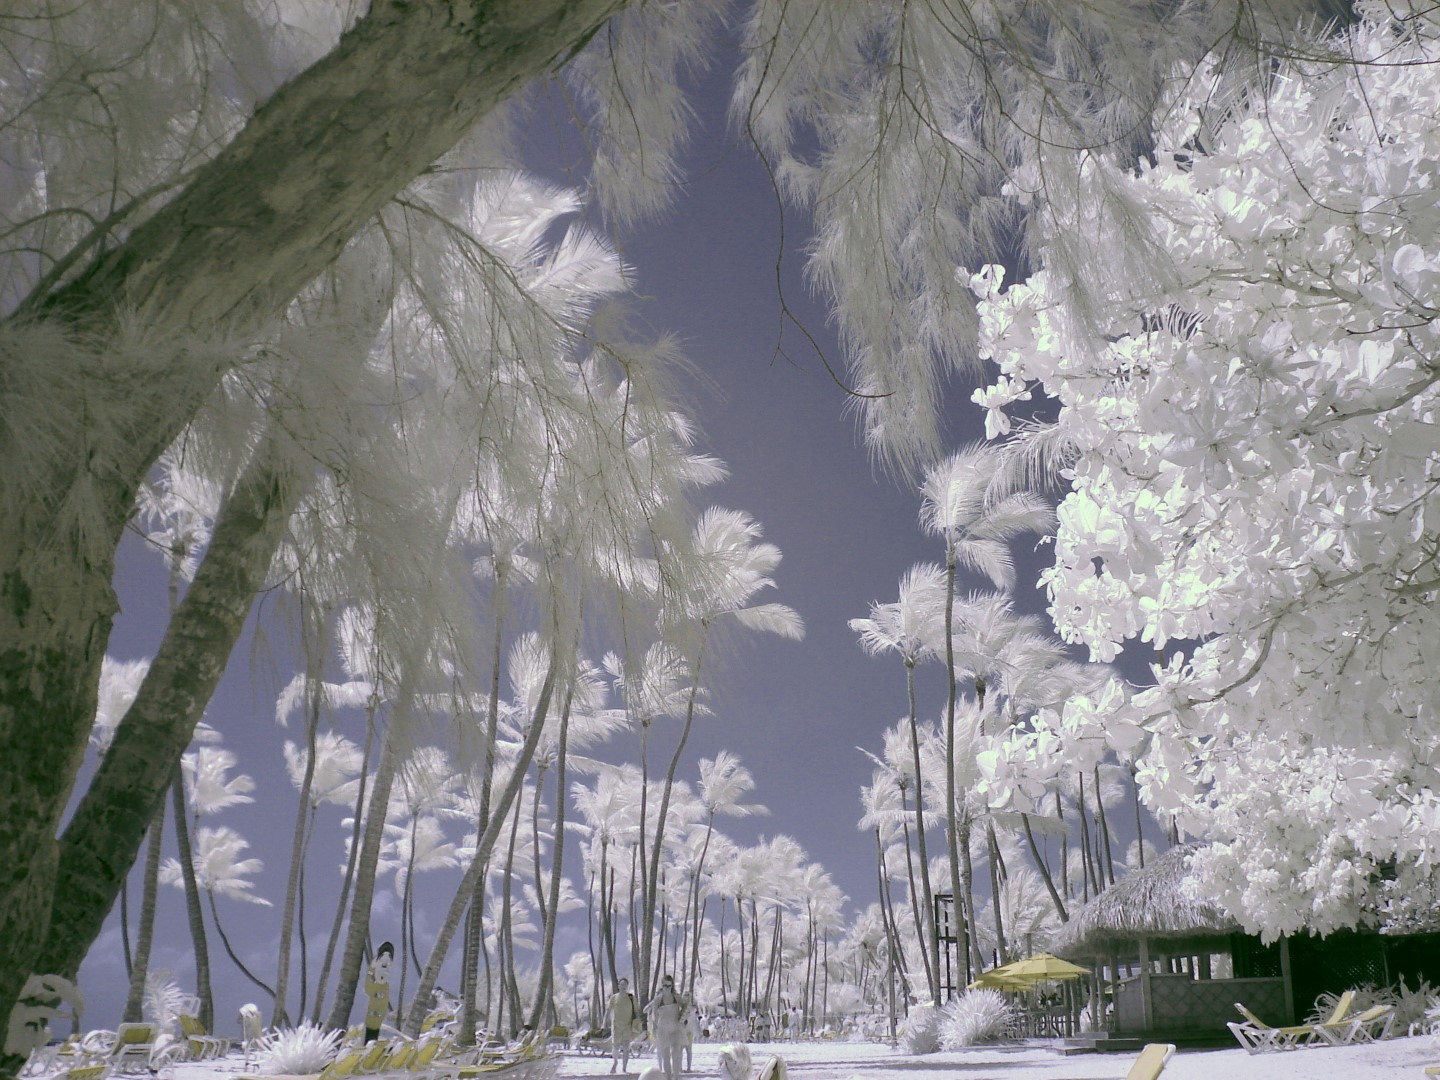 Sony infrared conversion